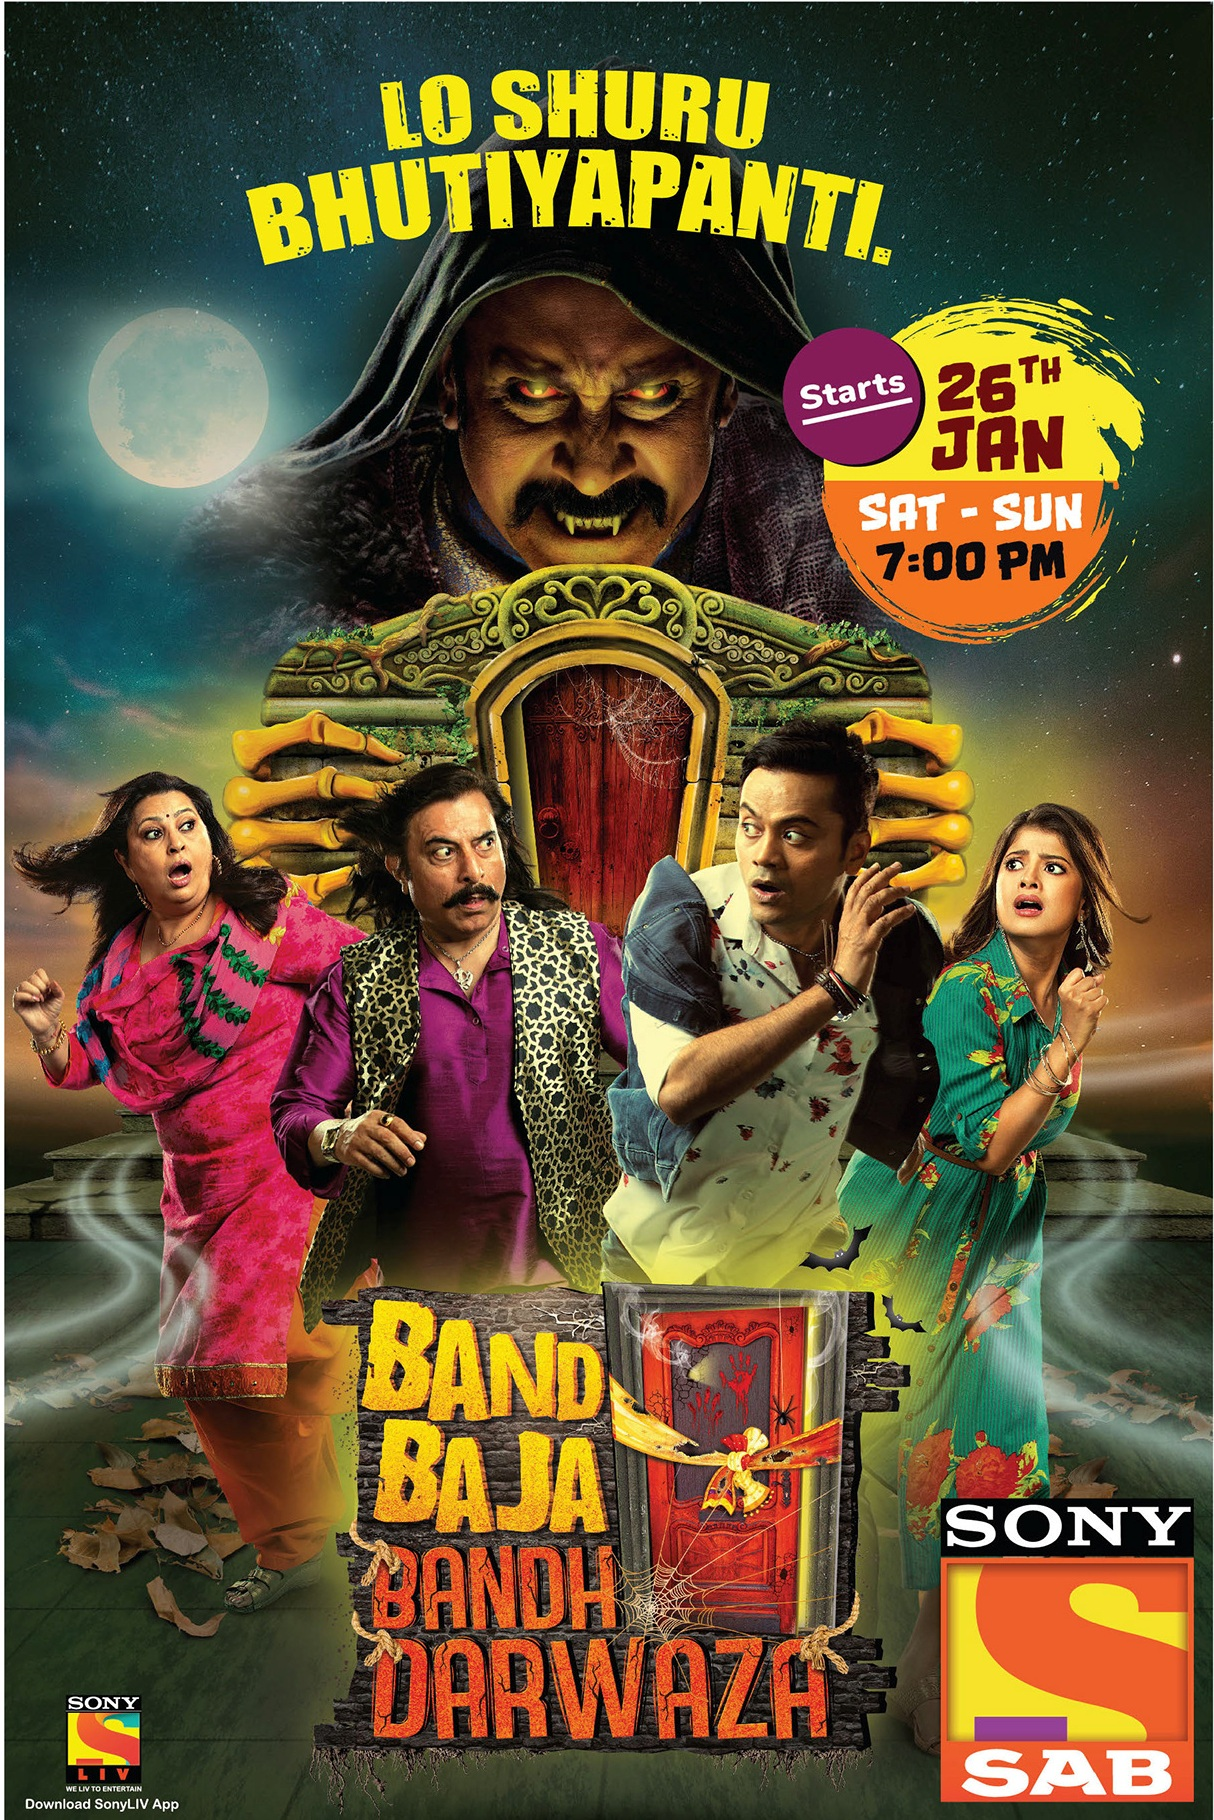 Band Baja Bandh Darwaza (TV Series 2019– ) - IMDb